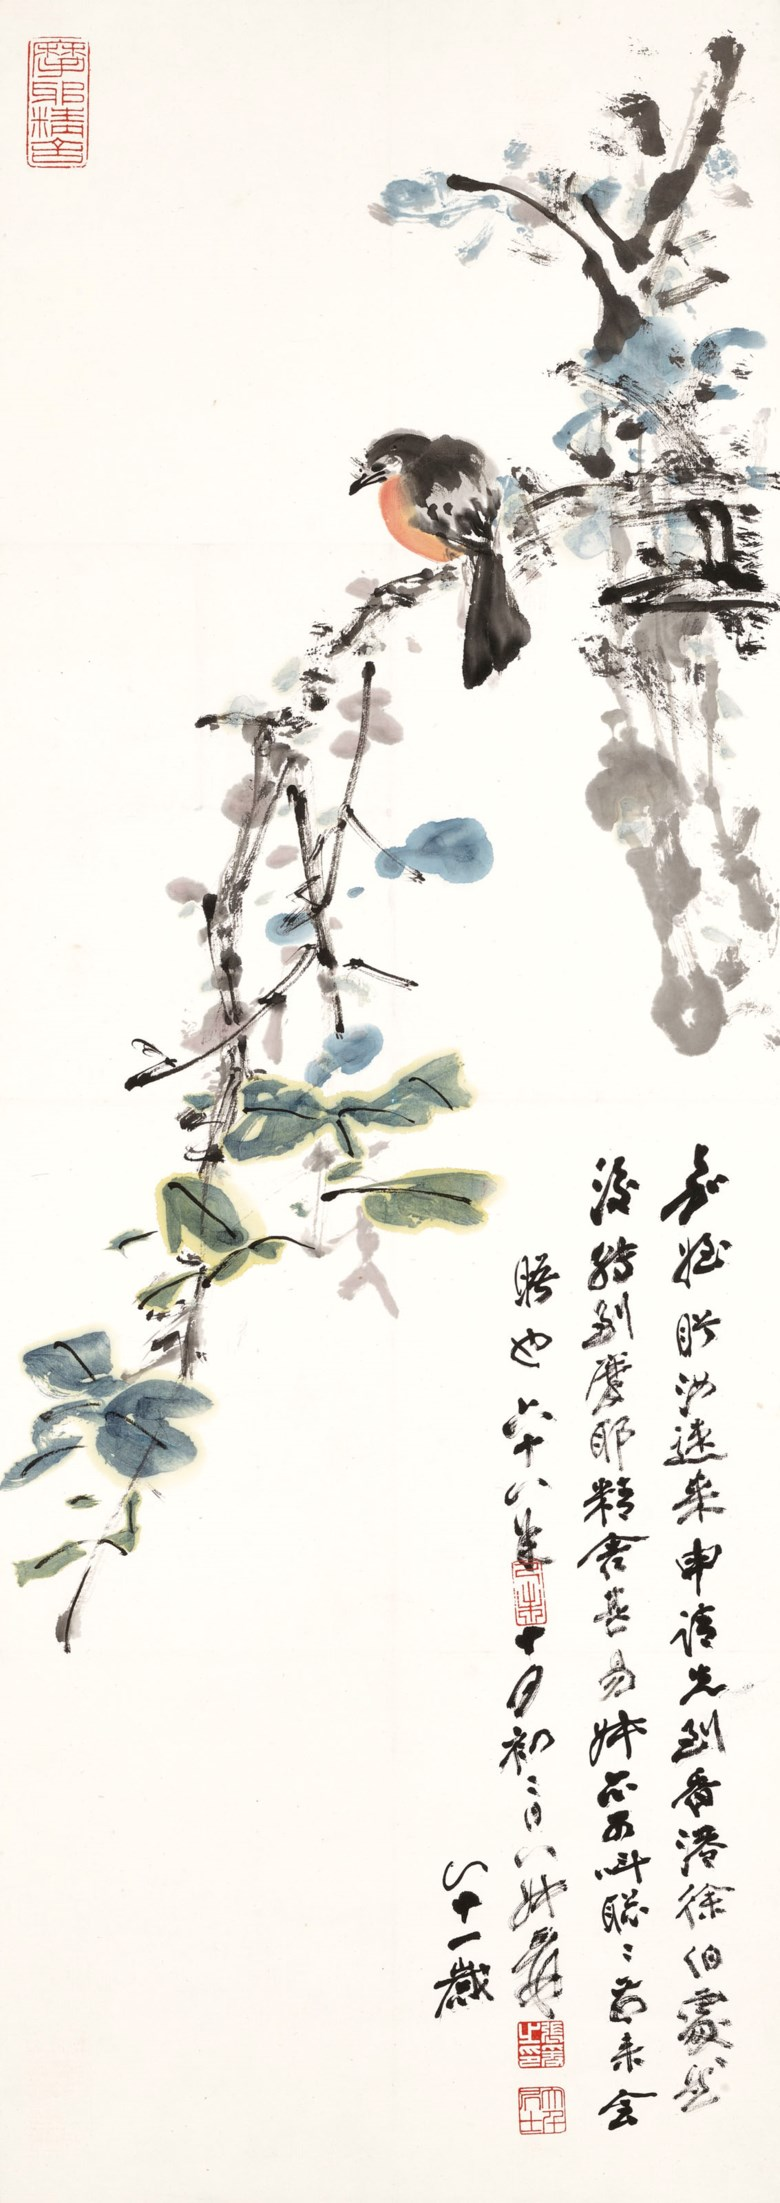 Zhang Daqian (1899-1983), Bird on a Branch, 1979, bearing an inscription to Xinjia, asking her to move to Taiwan. Scroll, mounted and framed, ink and colour on paper.94 x 33 cm (37 x 13 in). Estimate HK$400,000-600,000. Offered inFine Chinese Modern and Contemporary Ink Paintings on 27 May 2021 at Christie's in Hong Kong